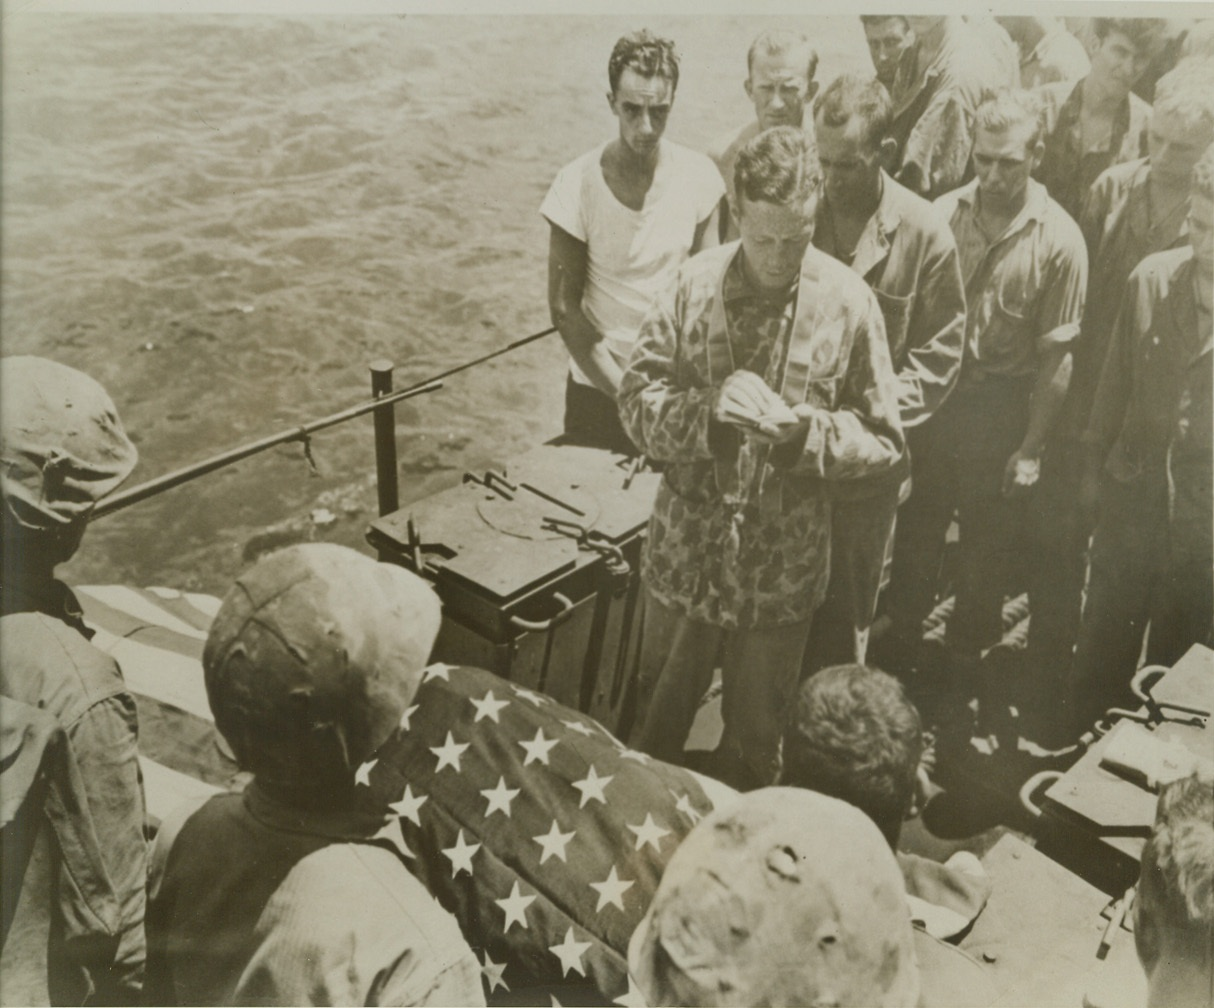 LAST RITES FOR MARINE, 8/8/1944. SOMEWHERE IN THE PACIFIC – Still wearing his camouflaged tunic, Lt. (JG) Joseph P. F. Gallagher, USNR, Catholic Chaplain, 840 Grand Concourse, Bronx, N.Y., reads the burial service for a Marine who died in the assault on Tinian Island. His friends form an Honor Guard for the burial at sea. Credit: U.S. Marine Corp photo via OWI Radiophoto from ACME;